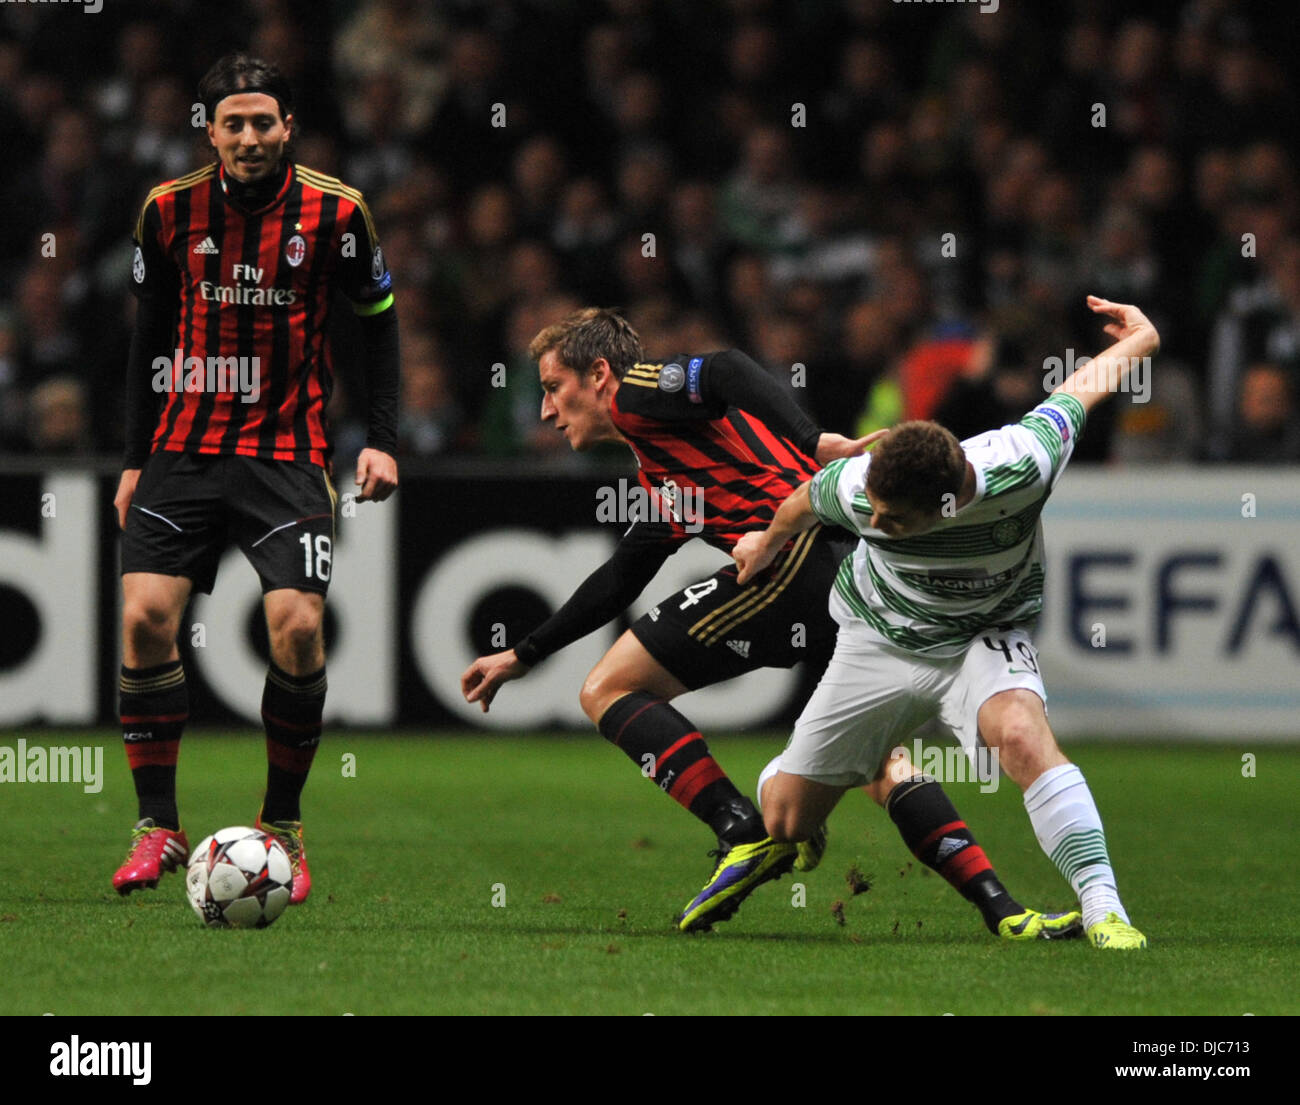 Glasgow, Scotland. 26th Nov, 2013. James Forrest looses out in this challenge during the UEFA Champions League Group H, game between Celtic FC and AC Milan. From Celtic Park Stadium, Glasgow. Credit:  Action Plus Sports/Alamy Live News - Stock Image